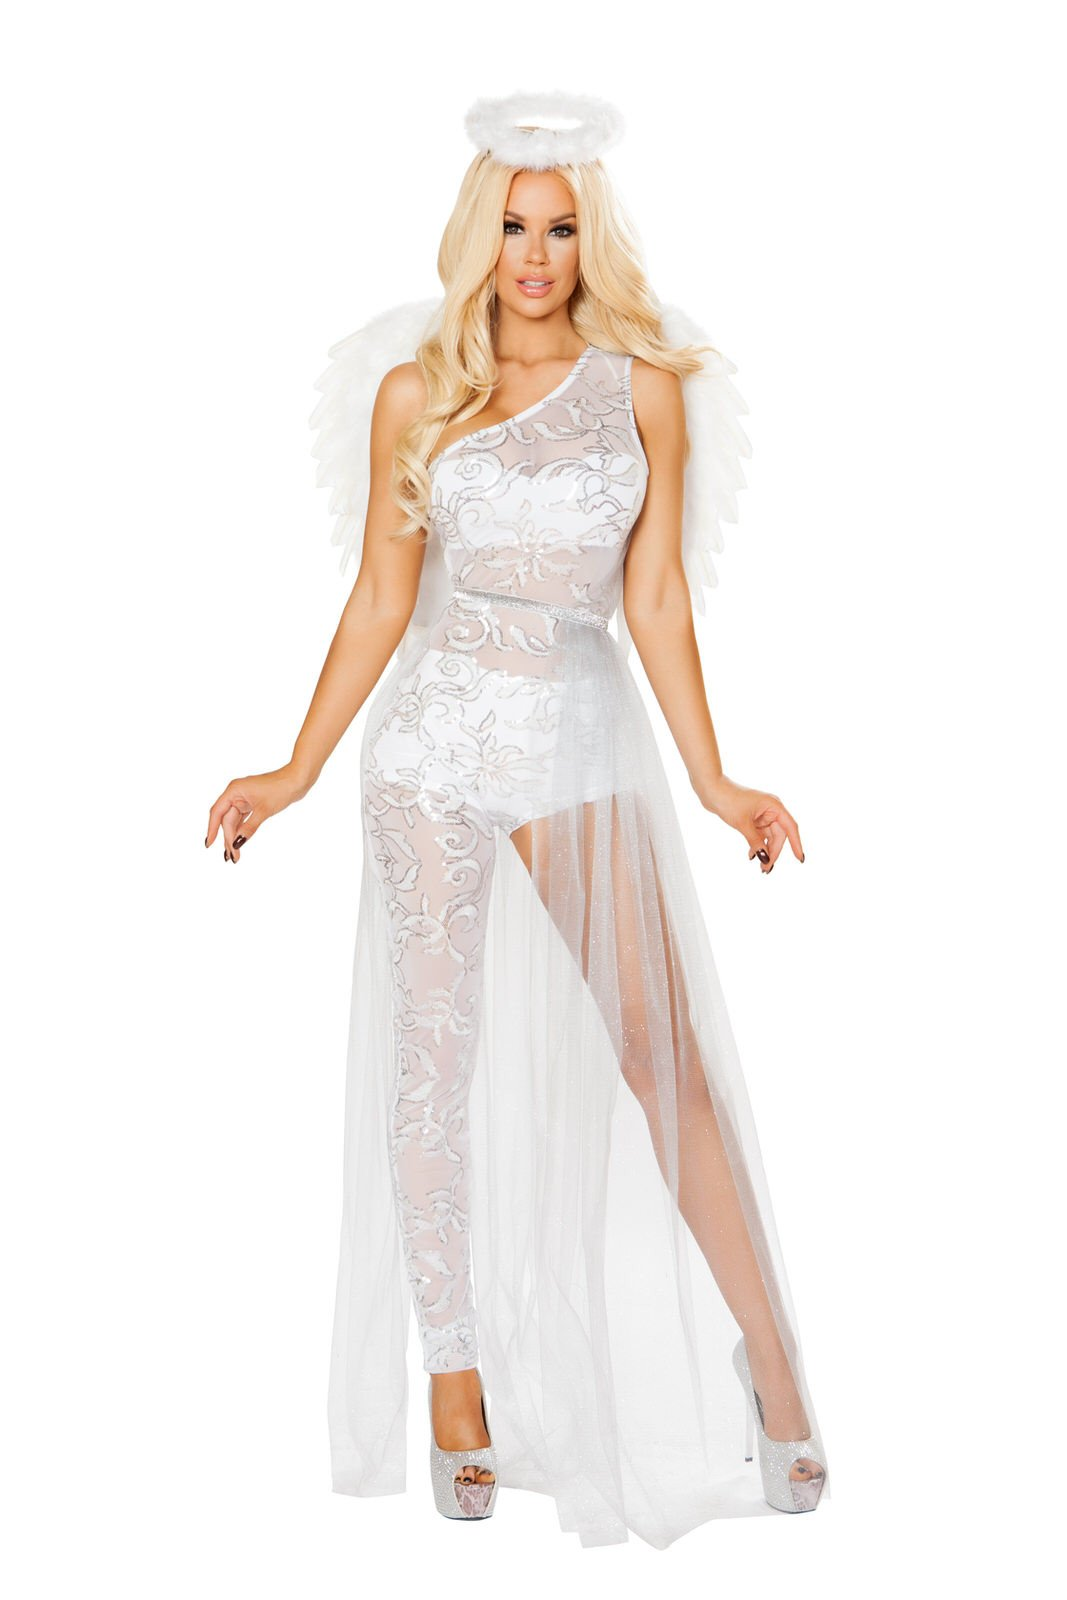 4814 - Roma Costume 3pc Sweet Angel